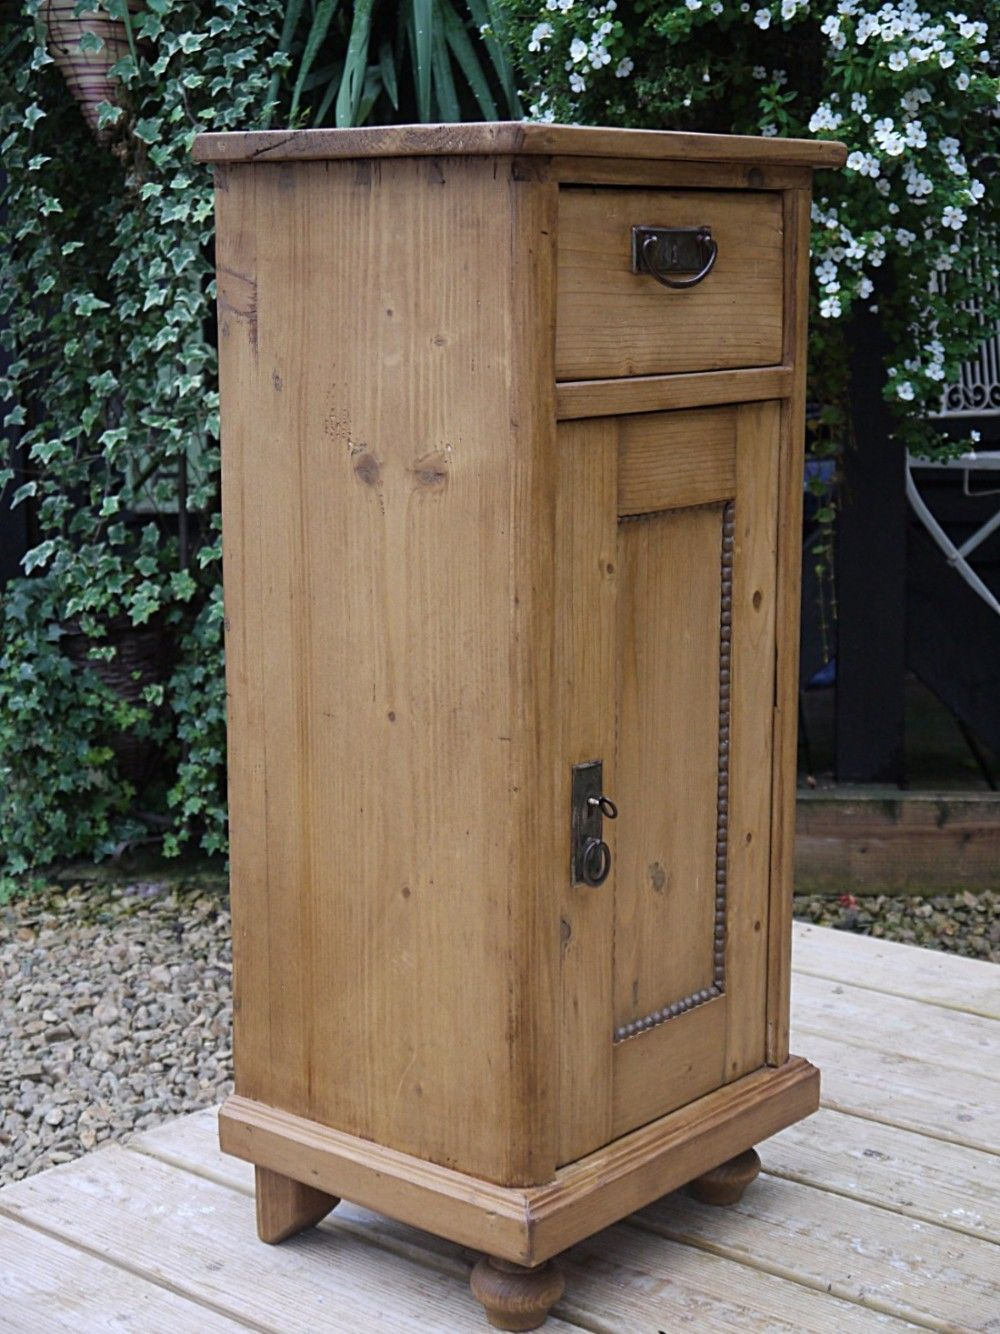 Large Old Antique Stripped/waxed Pine Bedside Cabinet/ Cupboard/ Lamp Table  With Key! - LARGE OLD ANTIQUE STRIPPED/WAXED PINE BEDSIDE CABINET/ CUPBOARD